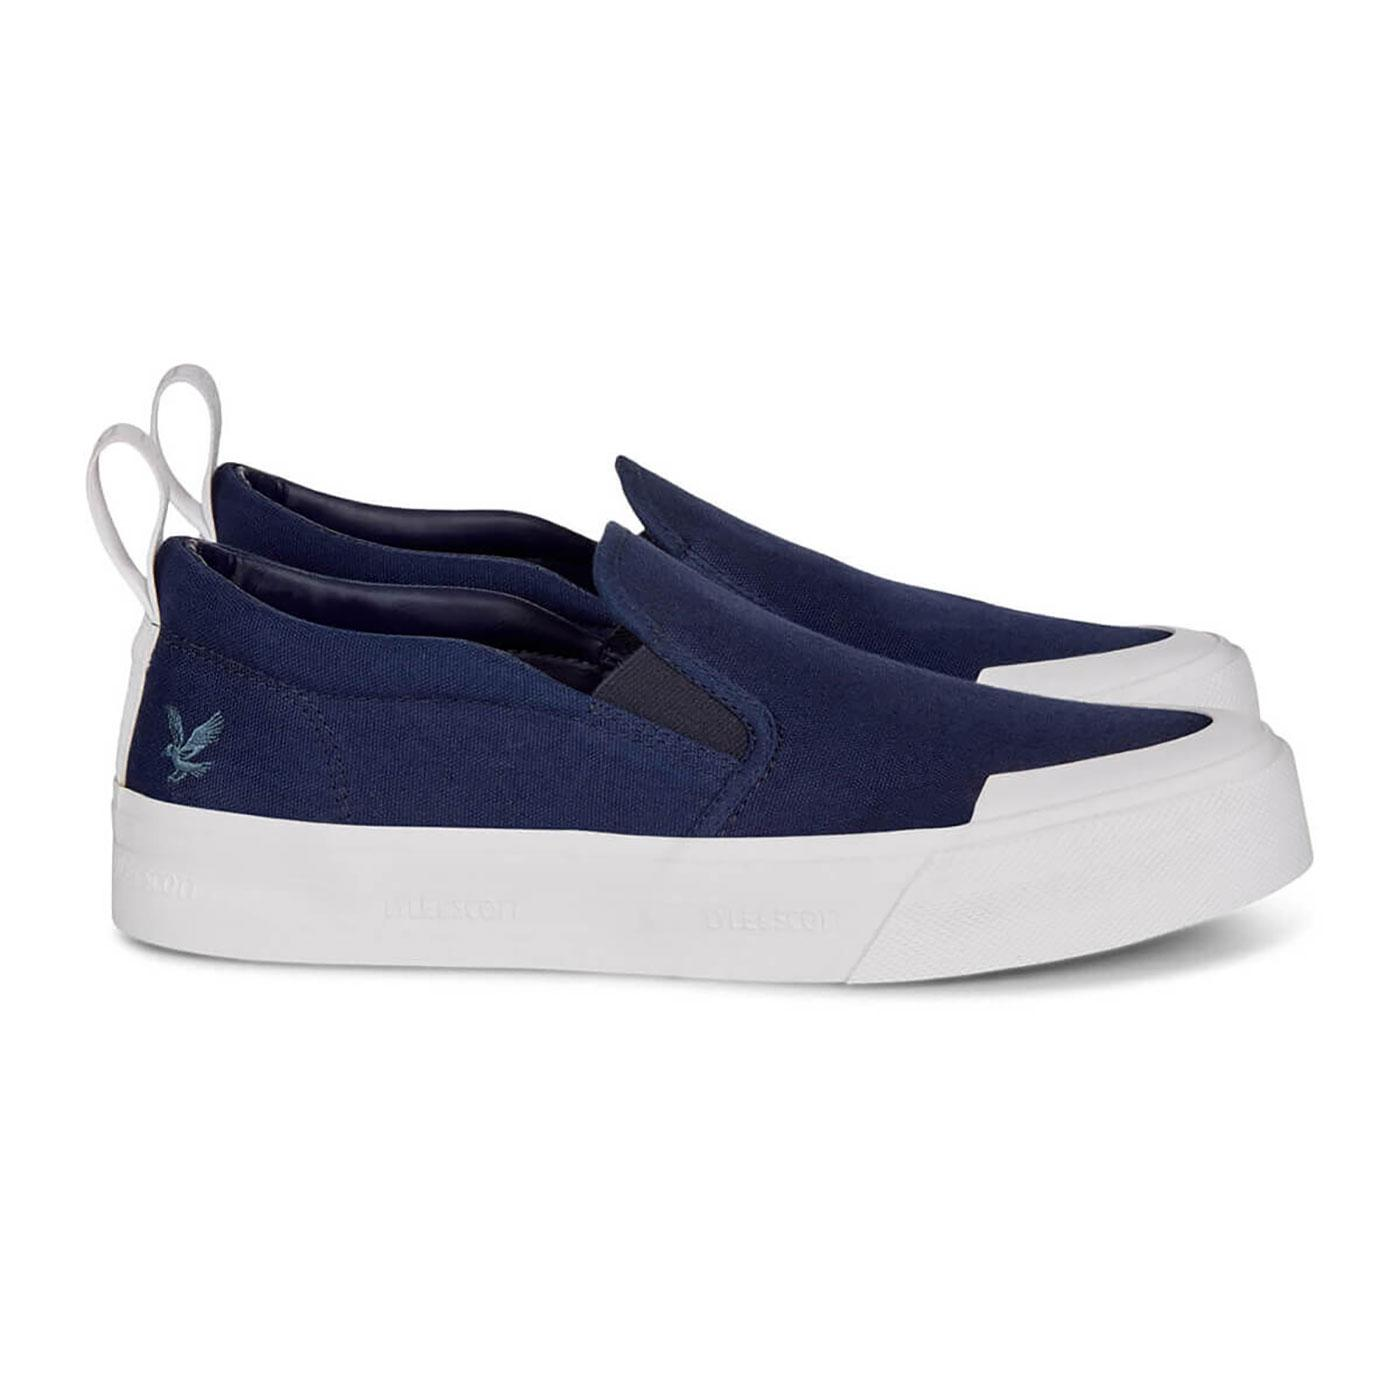 Duncan LYLE & SCOTT Canvas Slip-On Sports Shoes	N